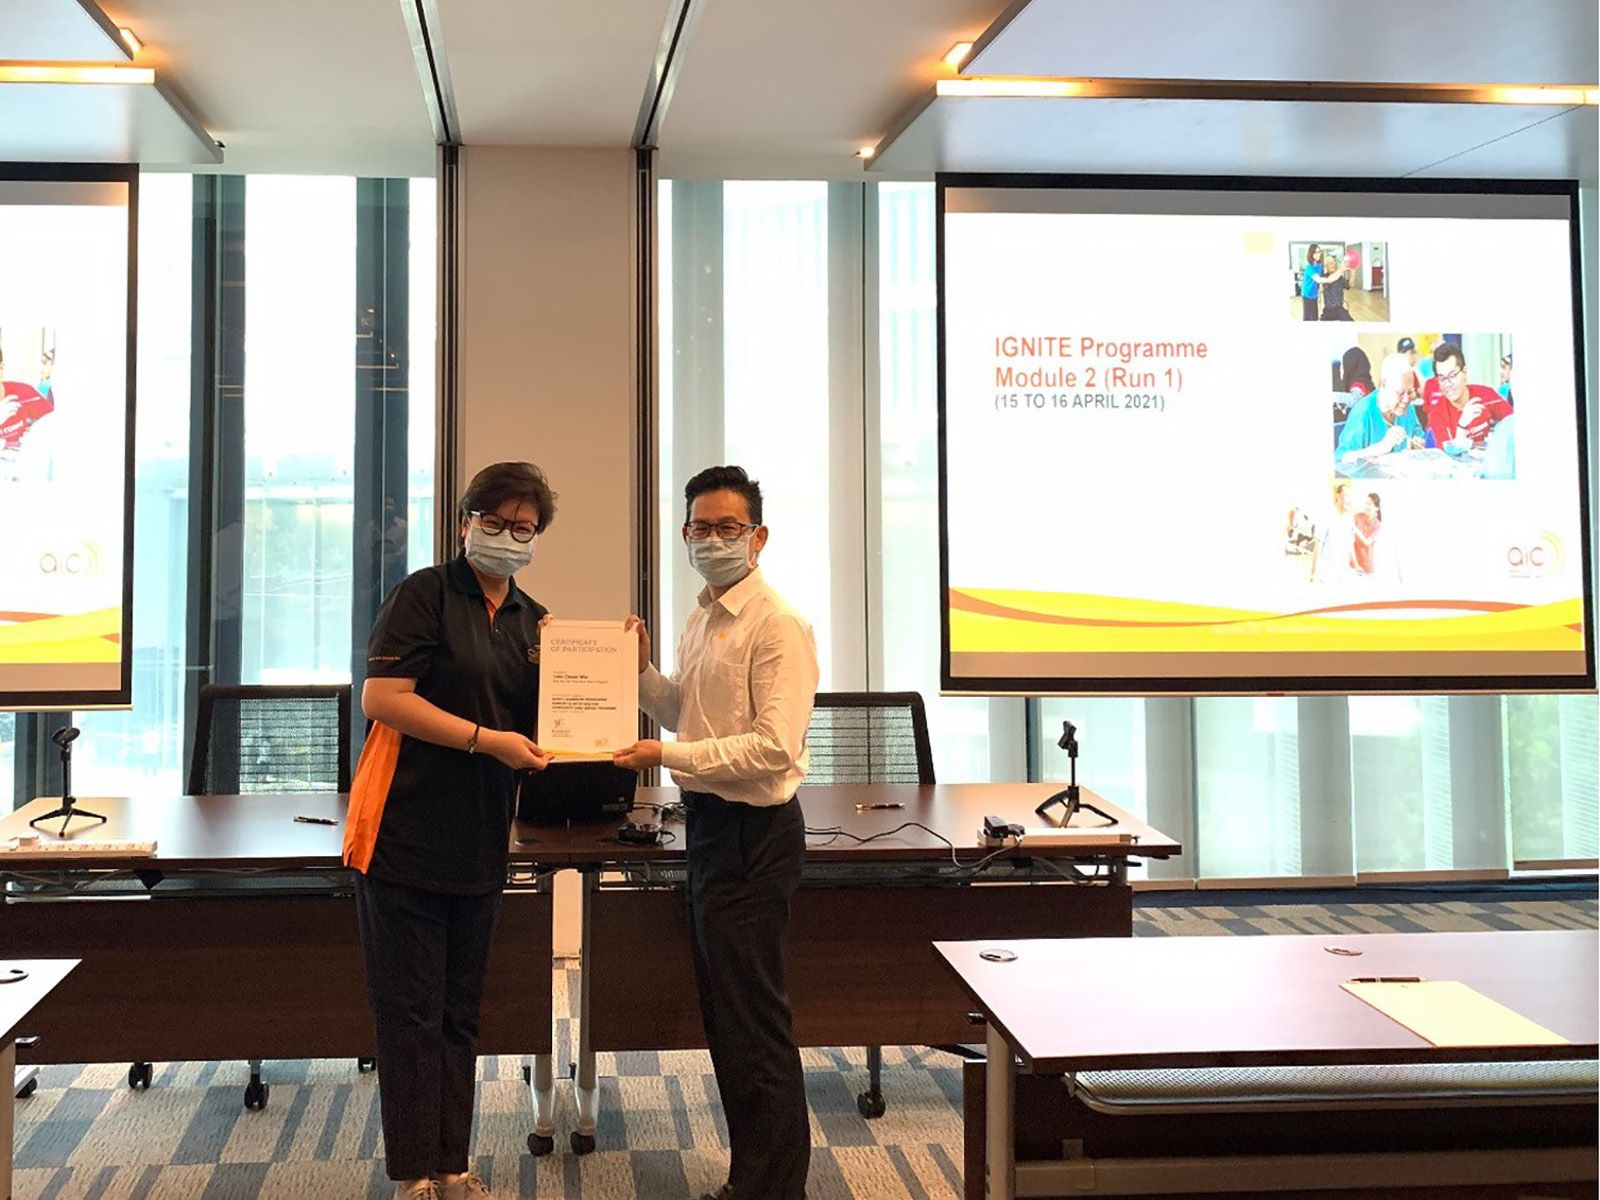 AIC organises an annual programme IGNITE Module 2 for new Community Care leaders in Singapore